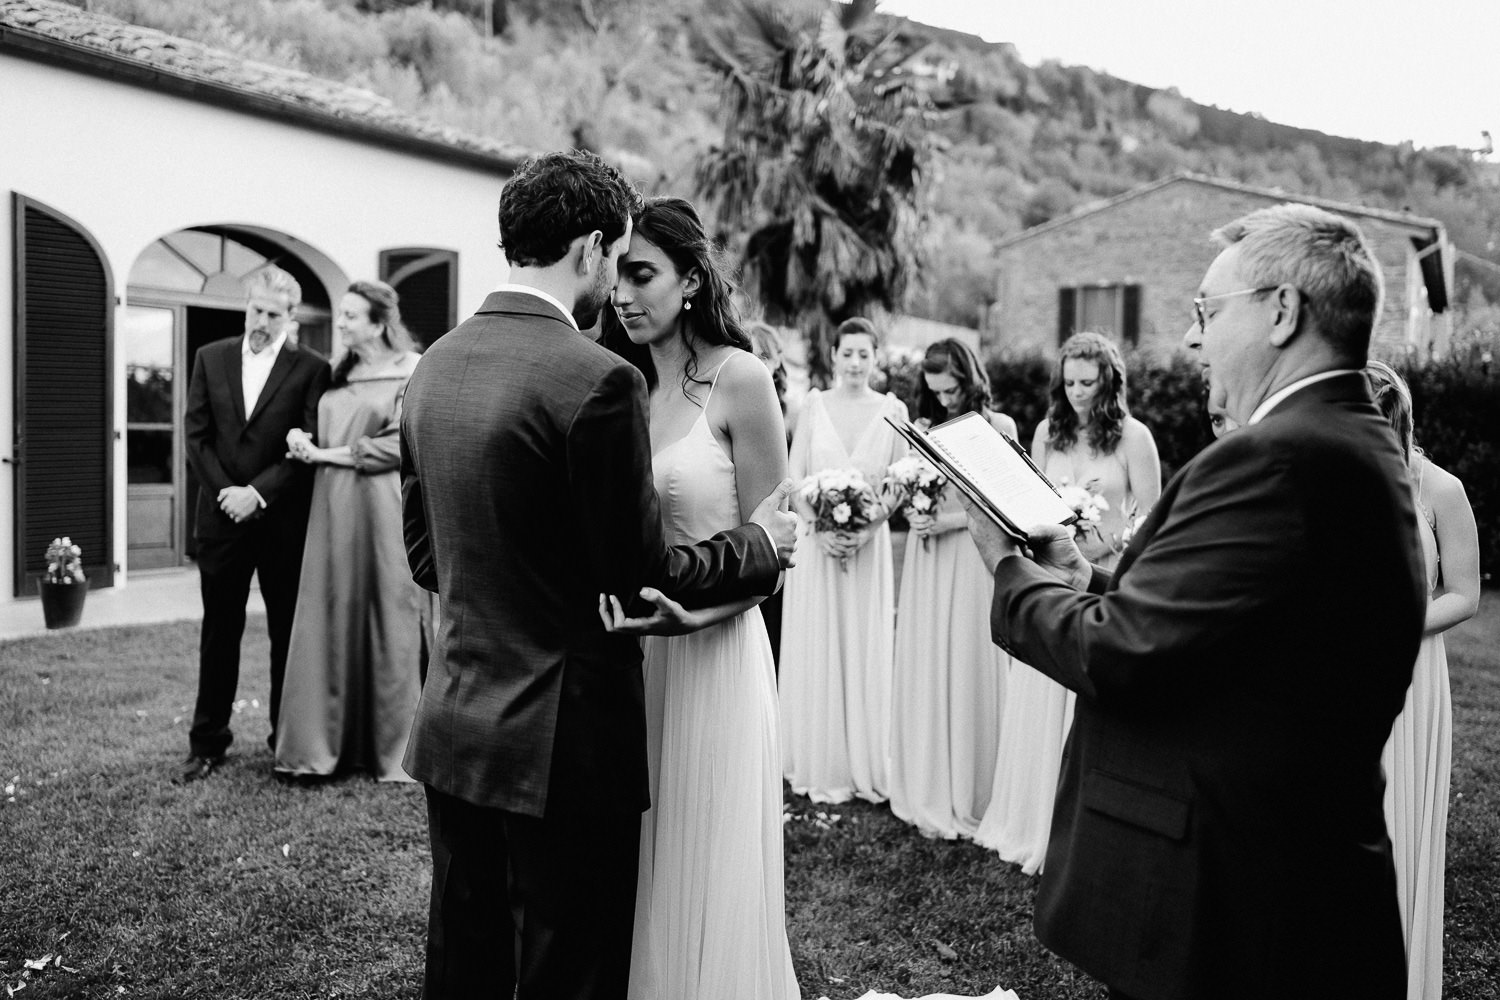 Unbria wedding photographer outdoor moving wedding ceremony